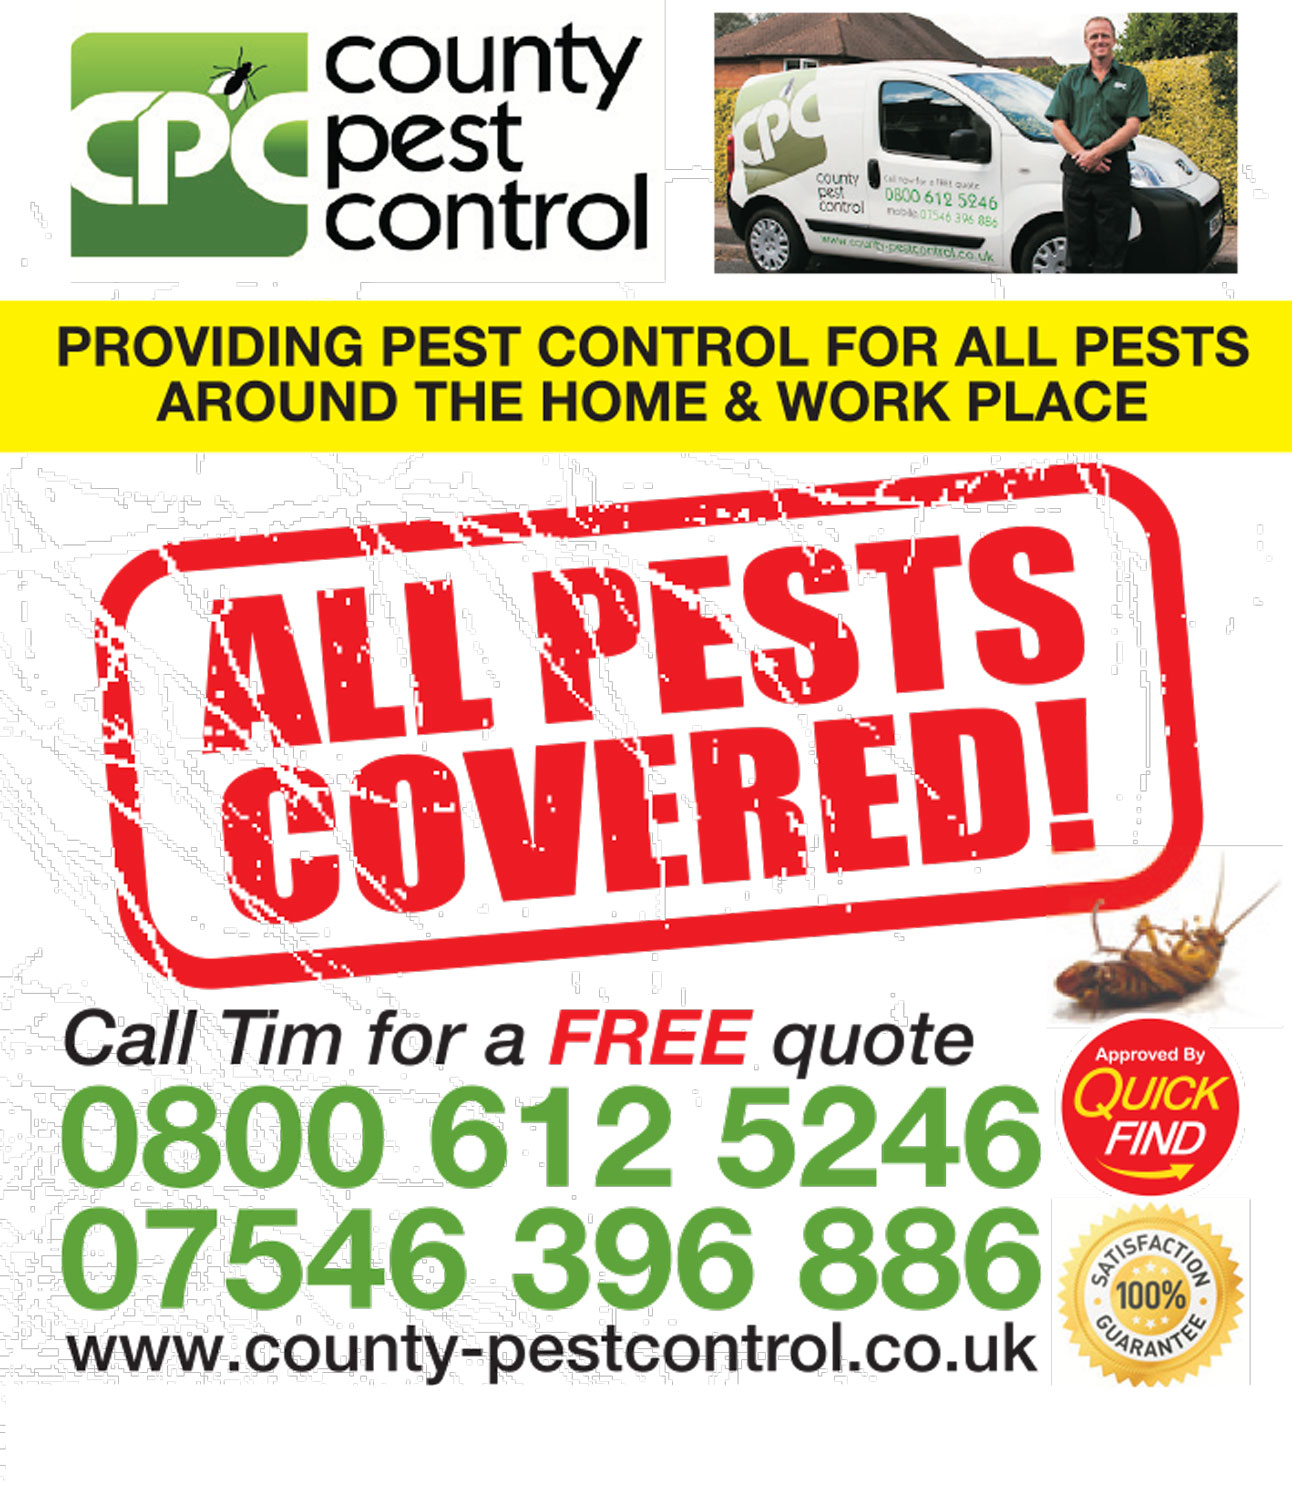 County Pest Control